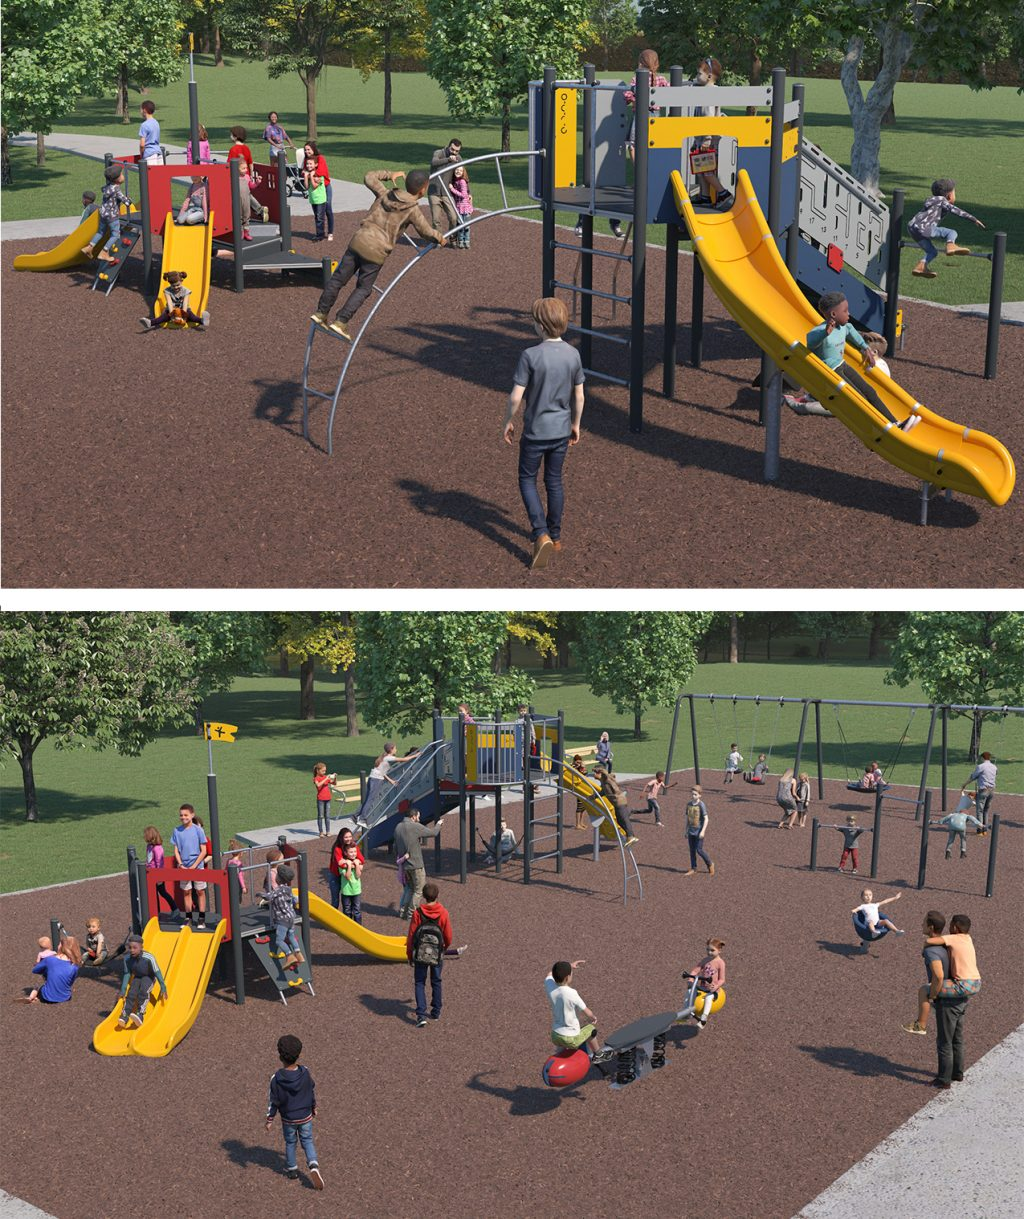 Playground Equipment B for Layout Option One (Rectangular Layout) as described below.